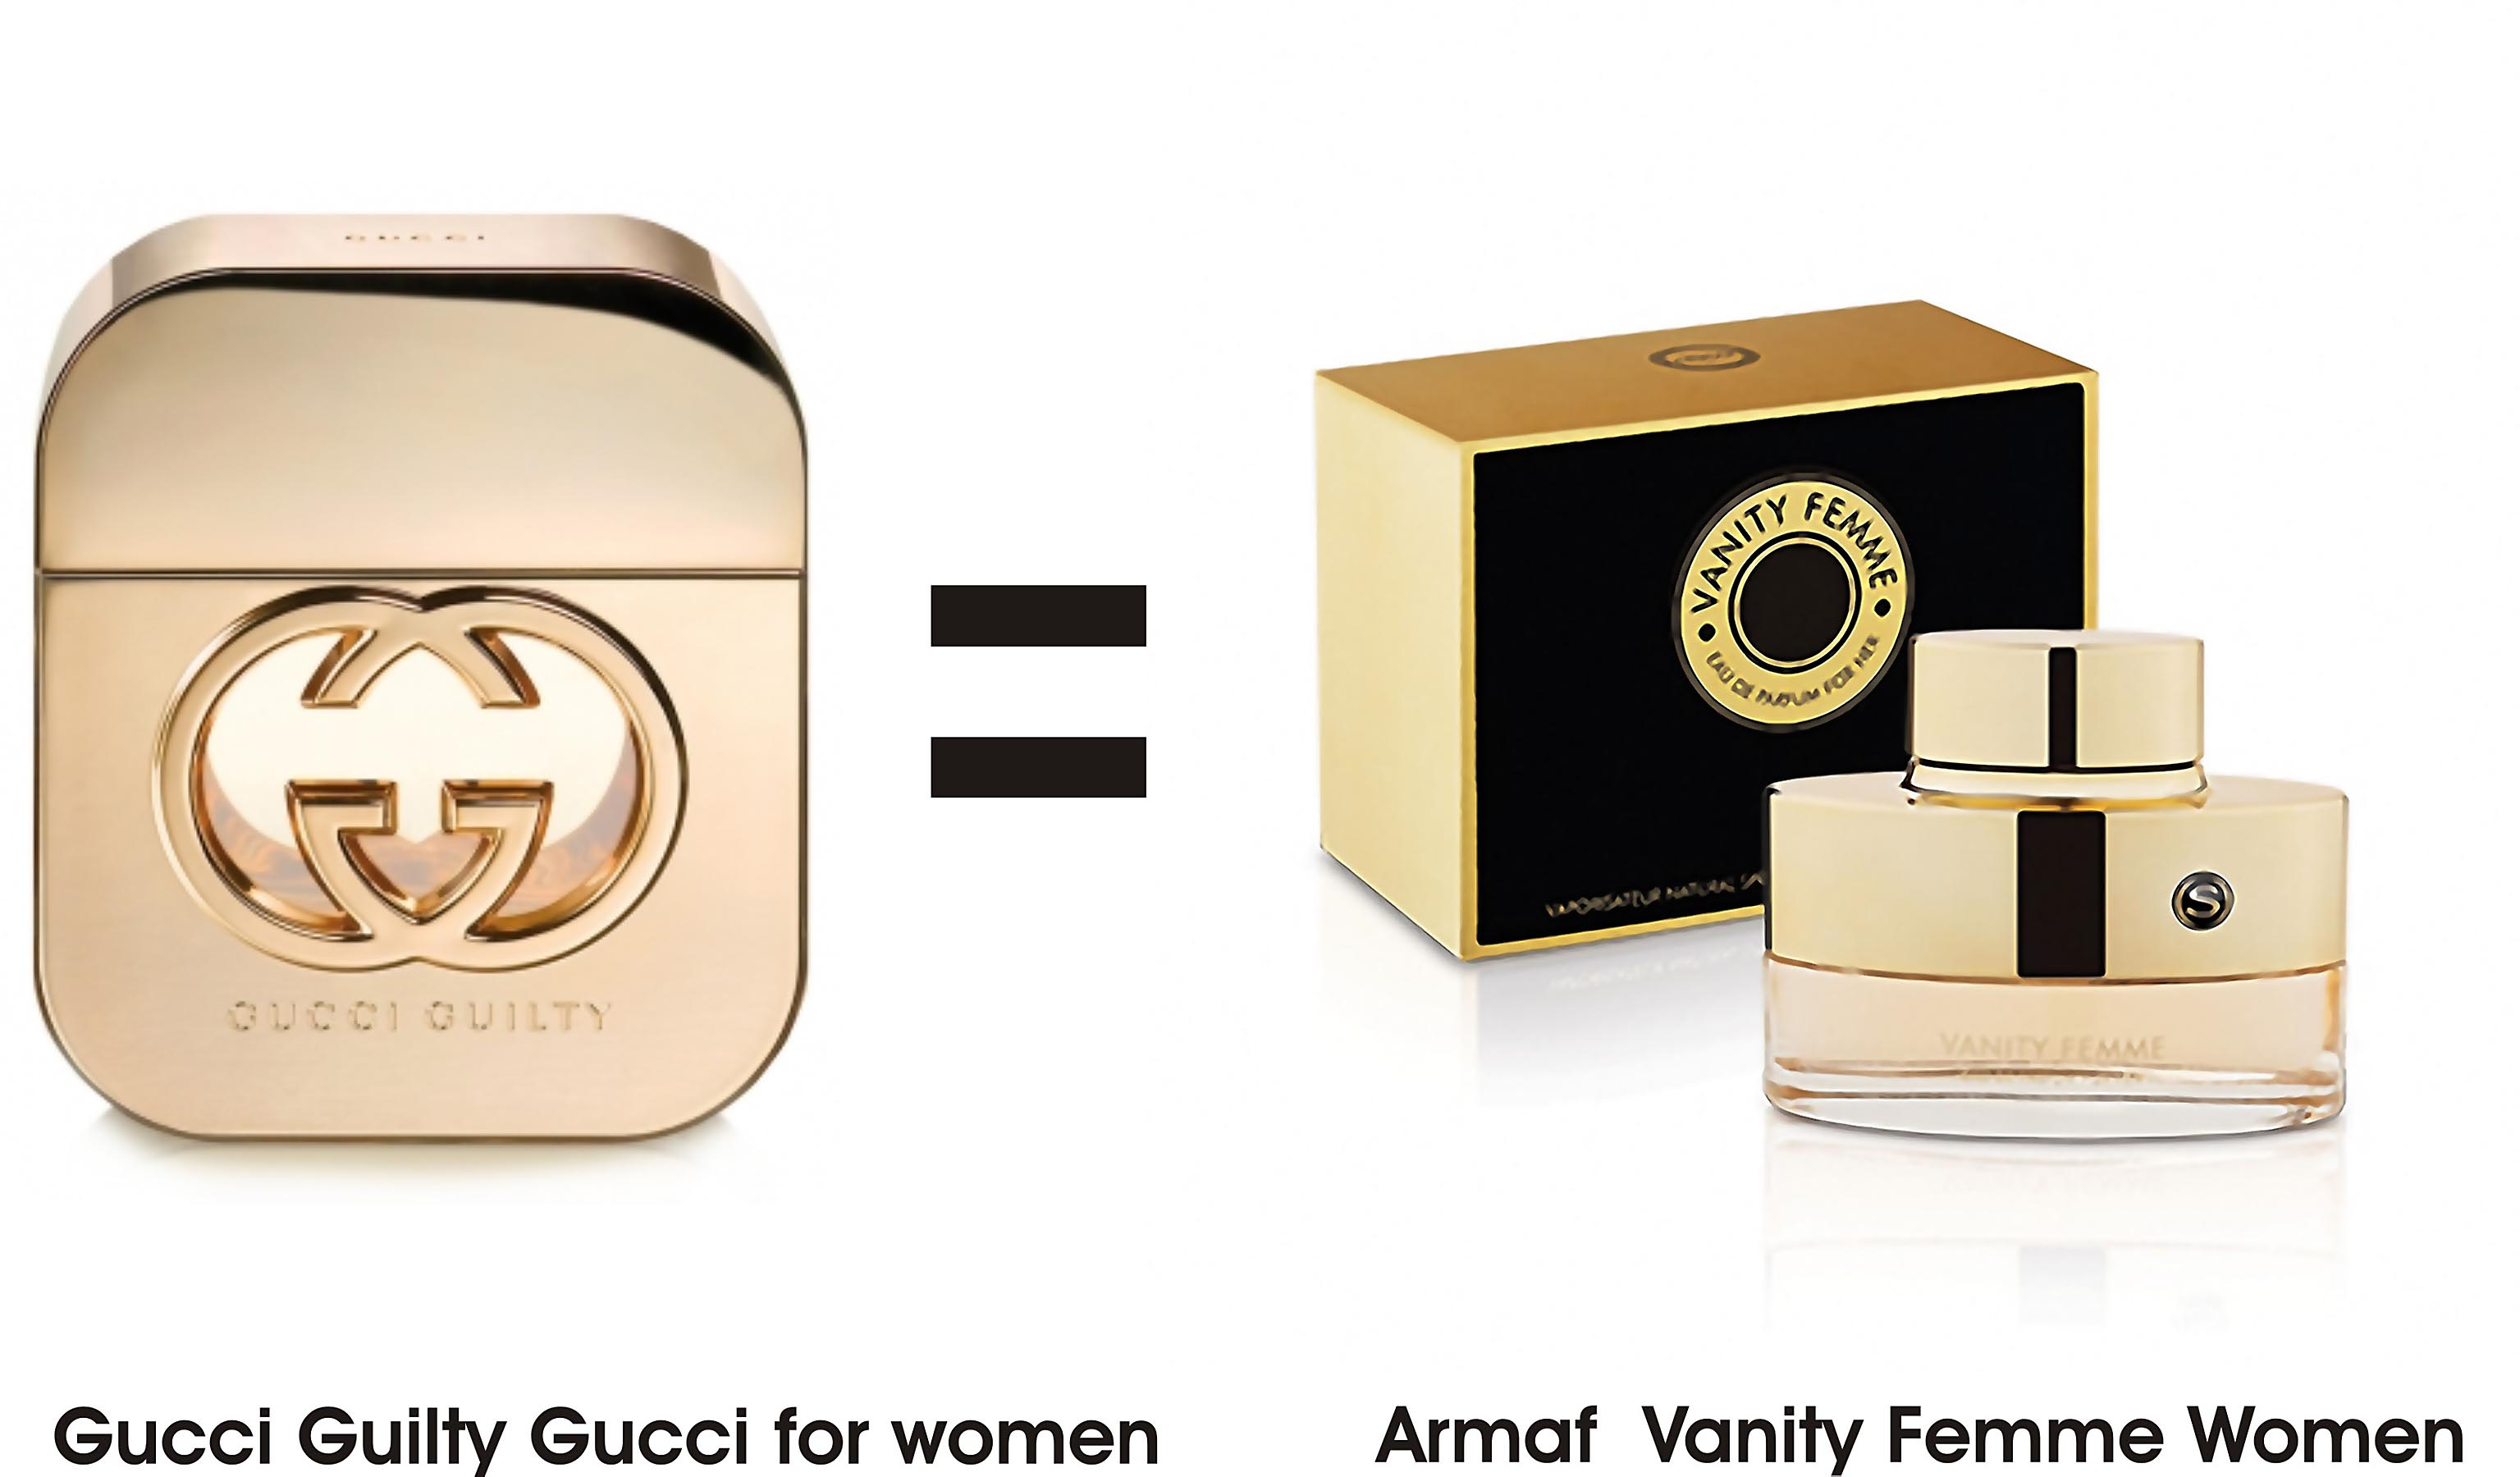 Armaf Clones Of Titans This All Perfume Reminds Me Parfum Gxxci Guilty Gucci Clone